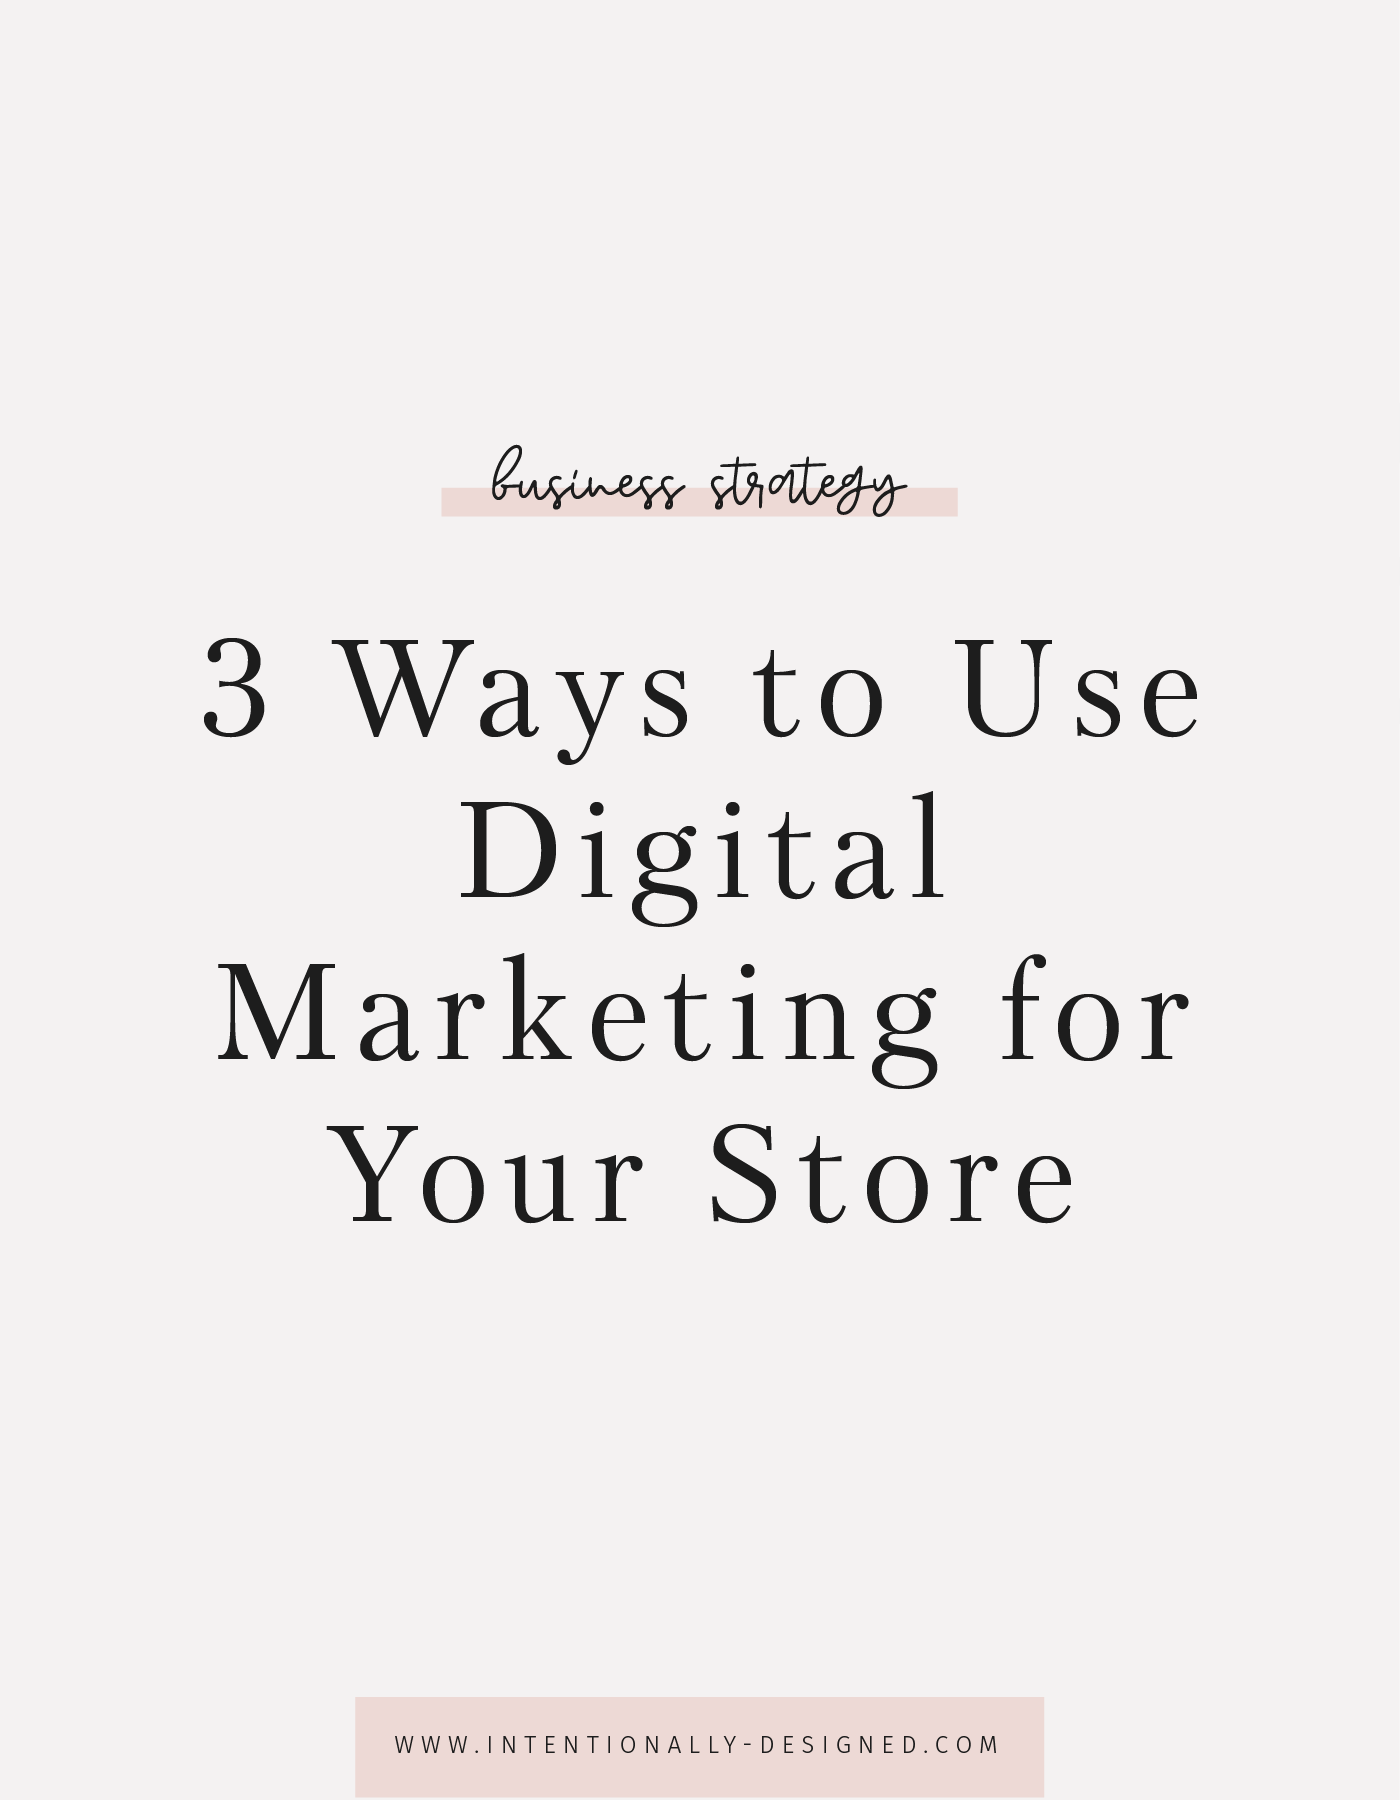 3 Ways to use digital marketing for your store